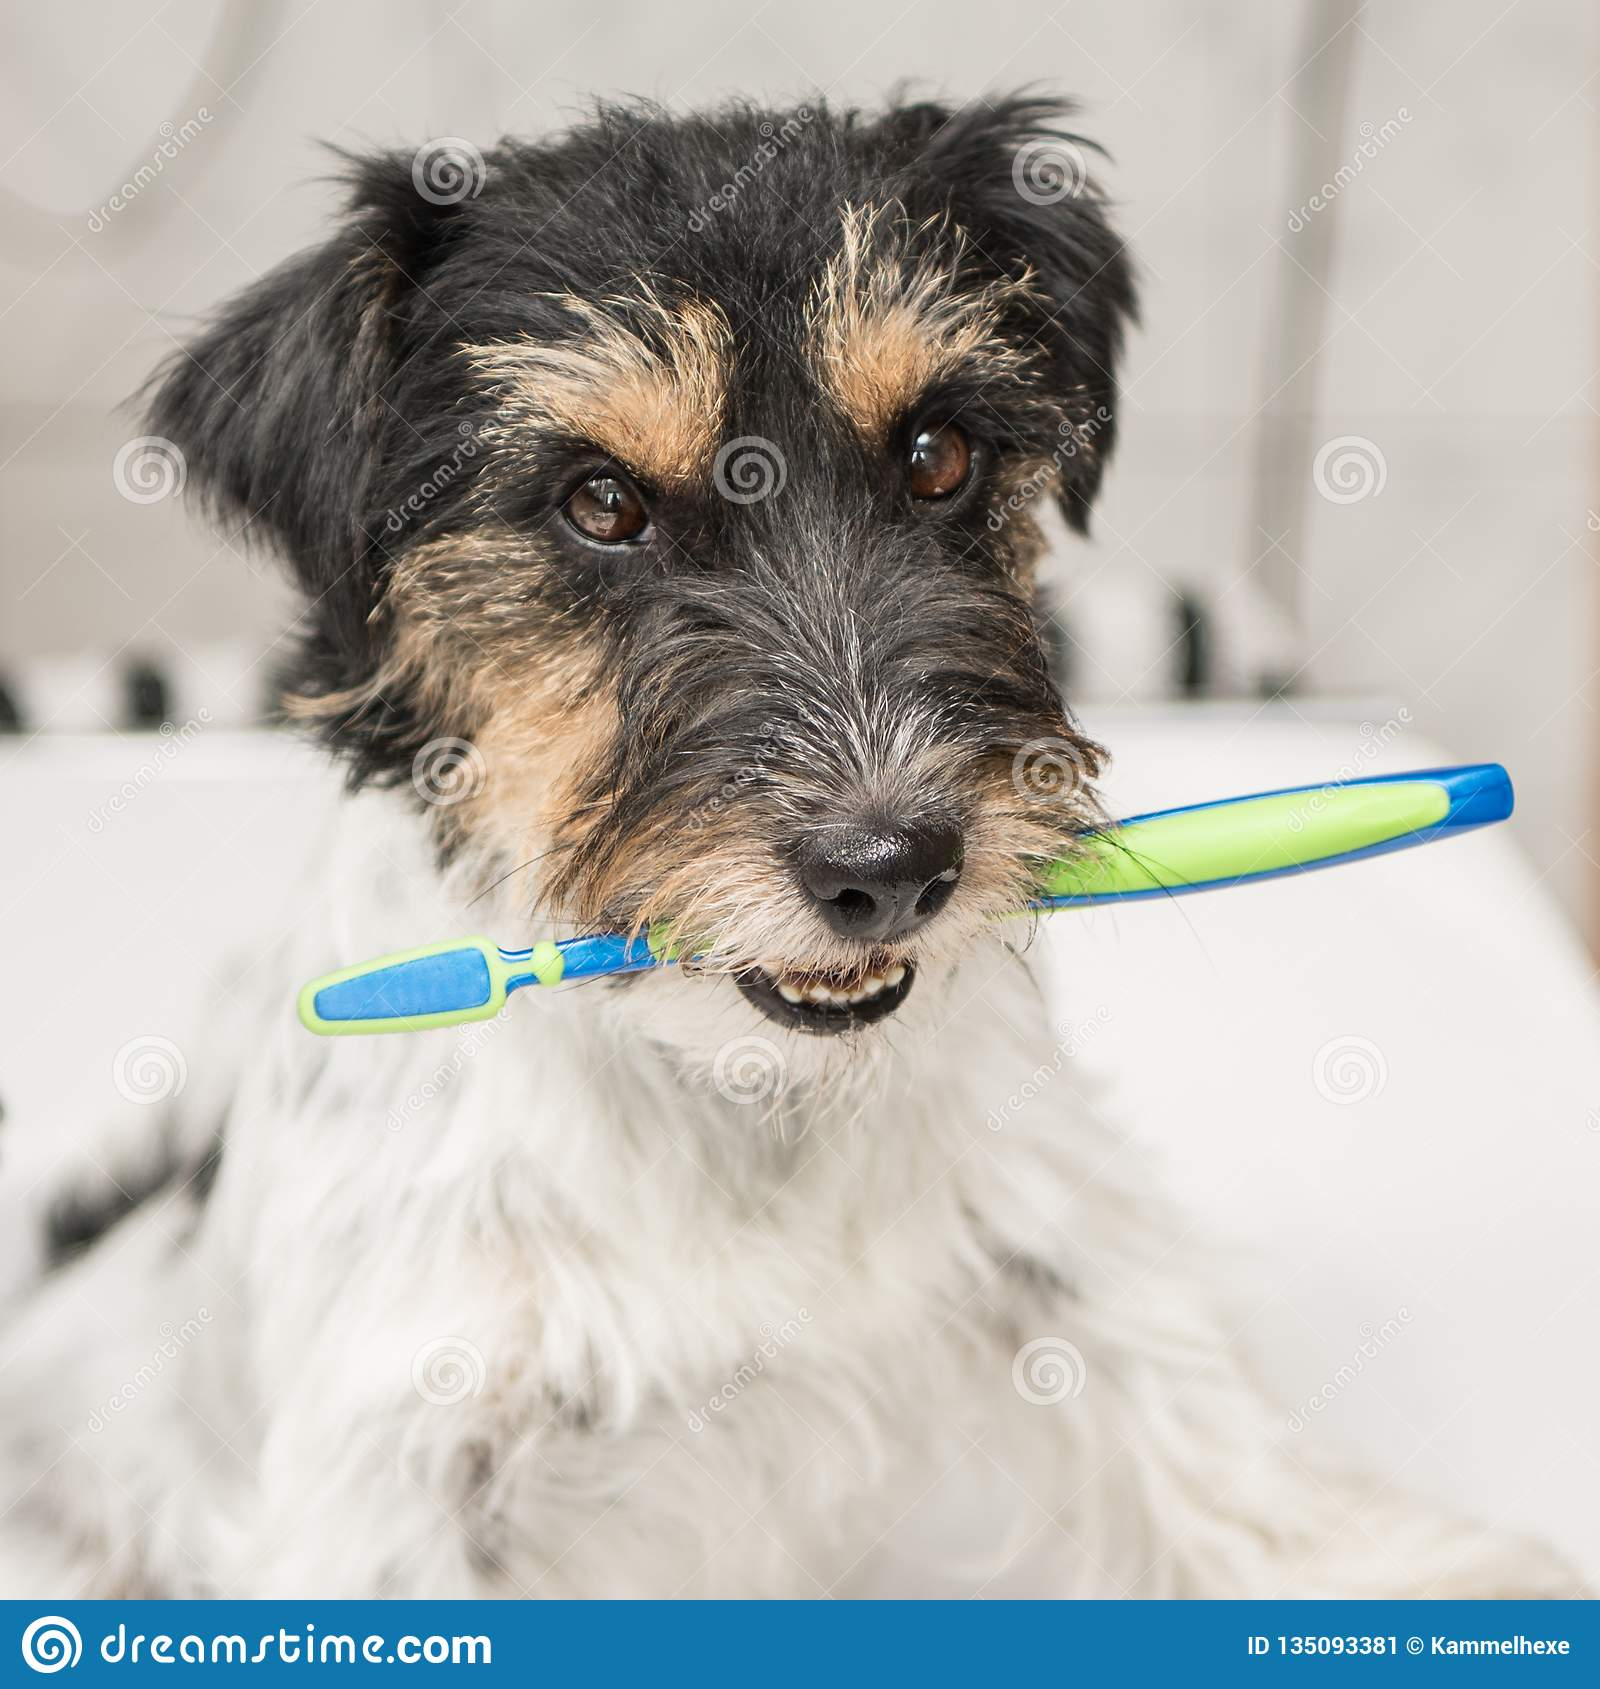 Jack Russell Terrier dog holding toothbrush . Ready to brush the teeth to avoid the need for a dentist